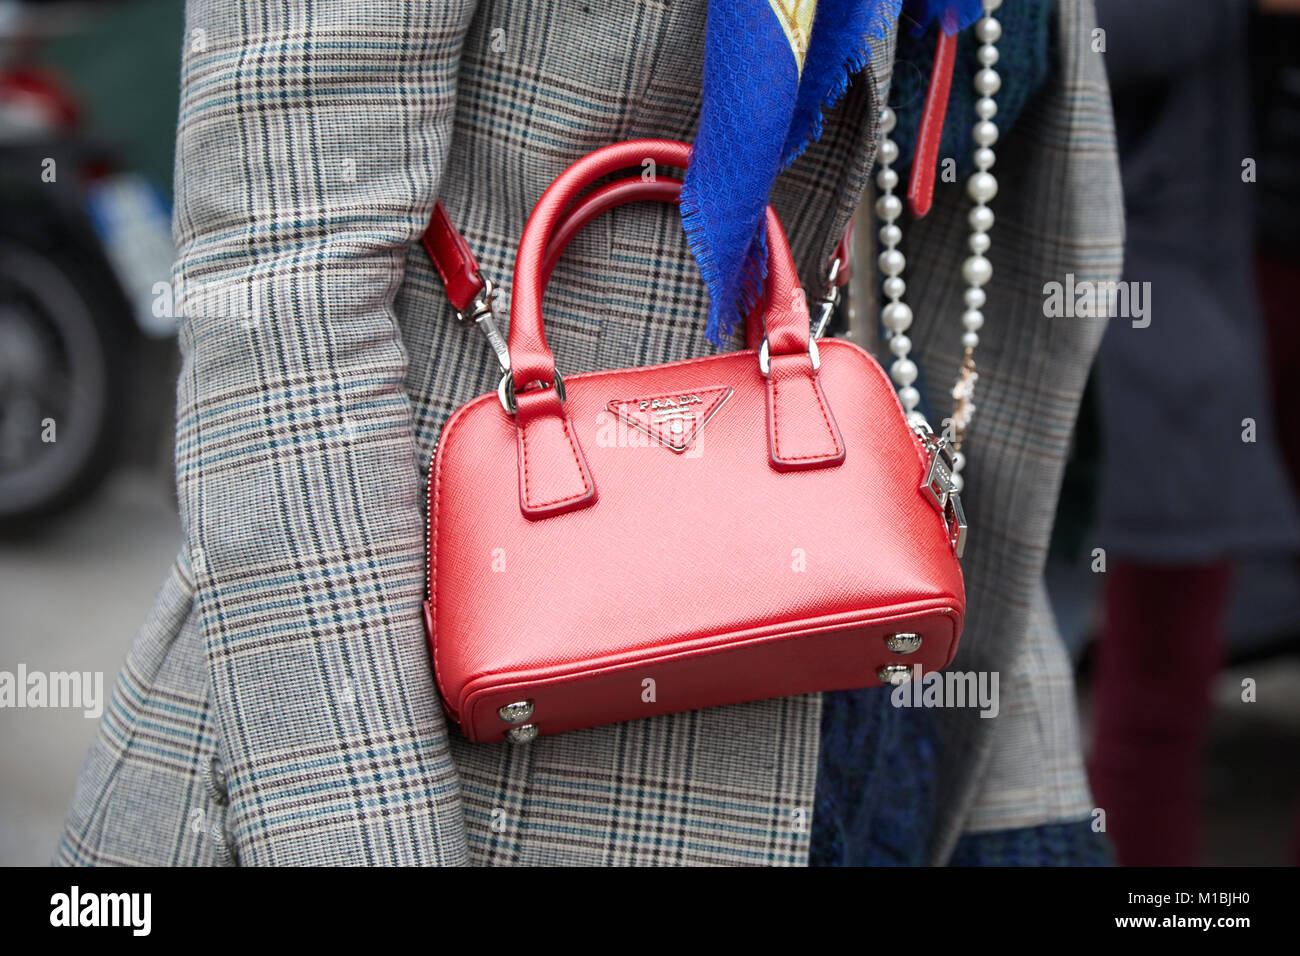 47b30598c3b08 Prada Bag In Milan Stockfotos   Prada Bag In Milan Bilder - Alamy